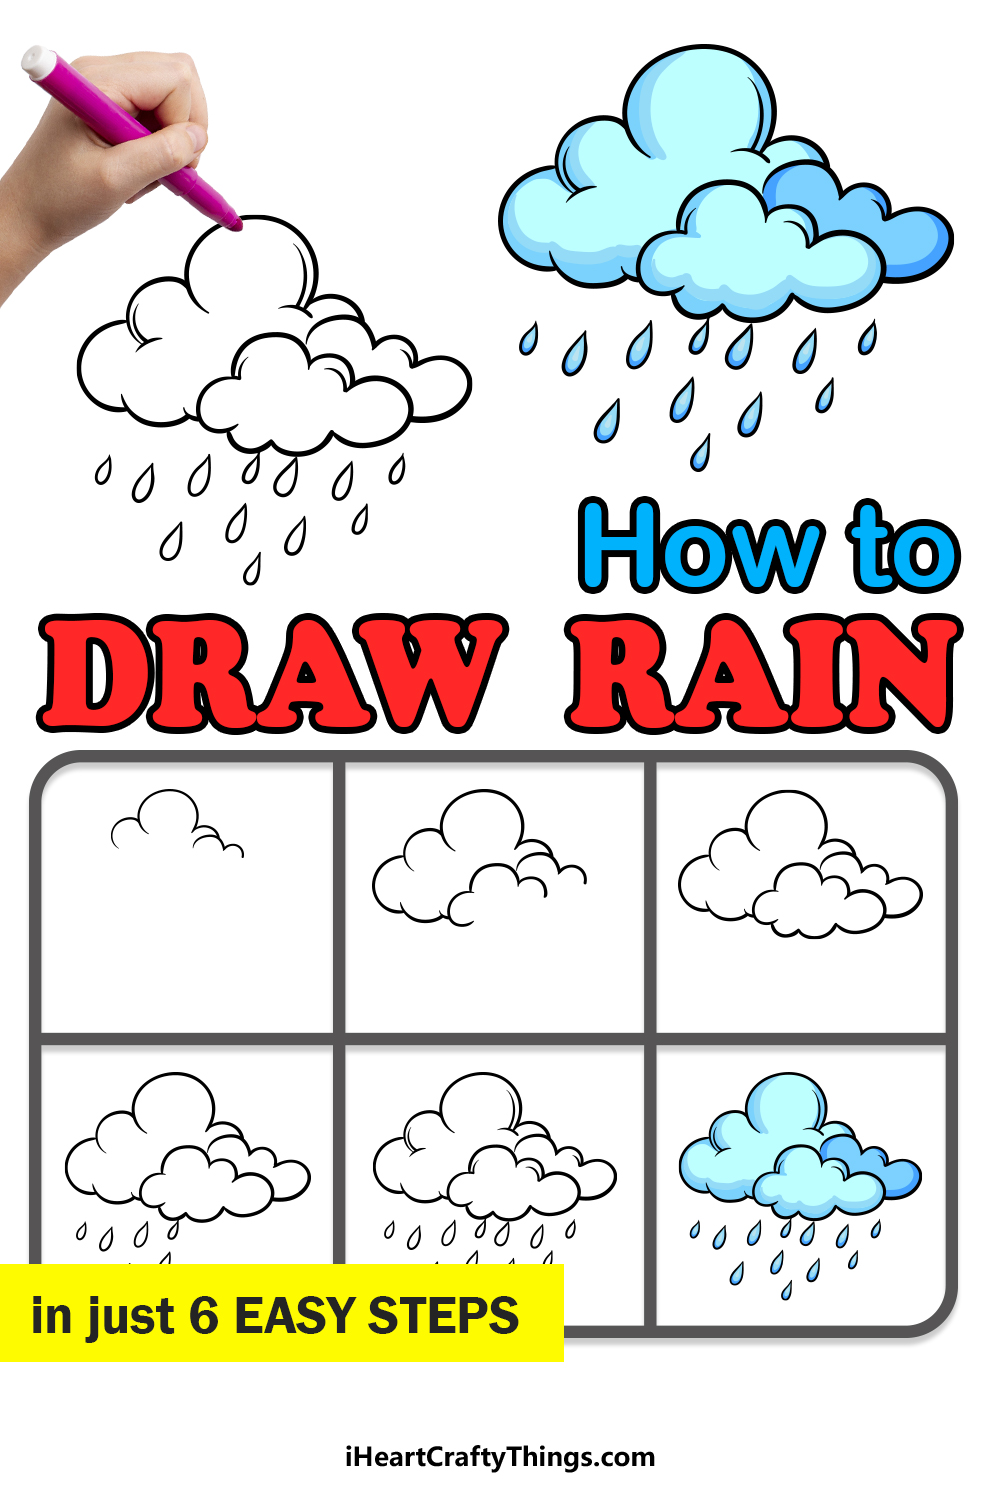 how to draw rain in 6 easy steps